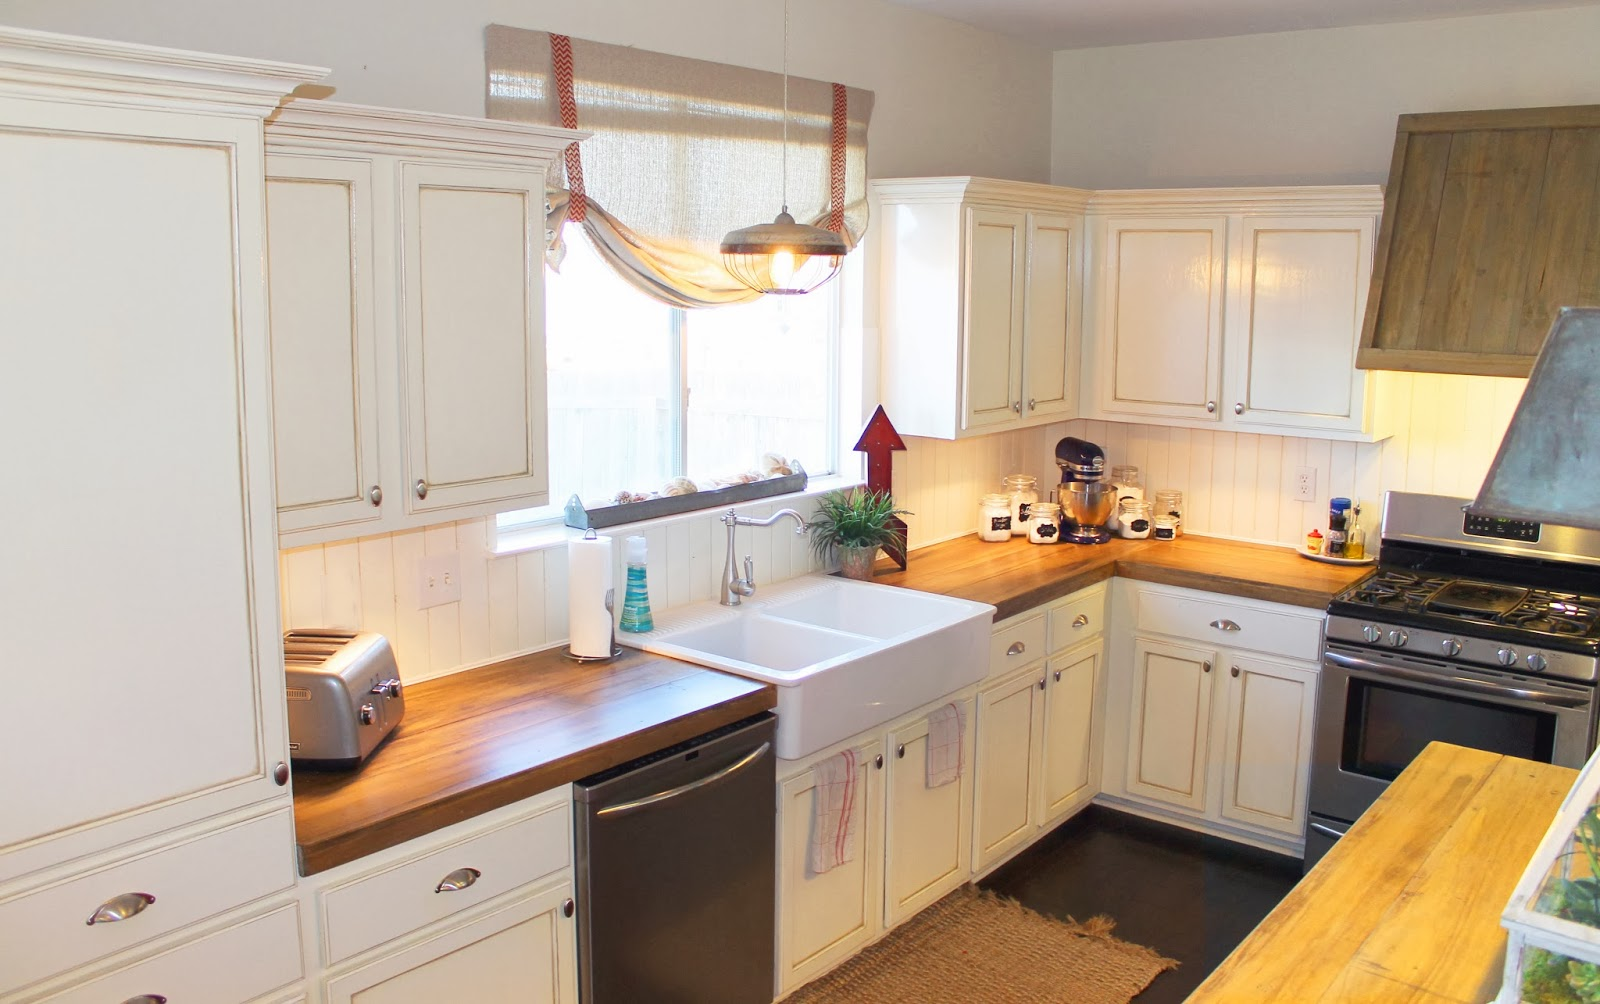 wood countertops kitchen hood fans remodelaholic how to create faux reclaimed white with the ragged wren on